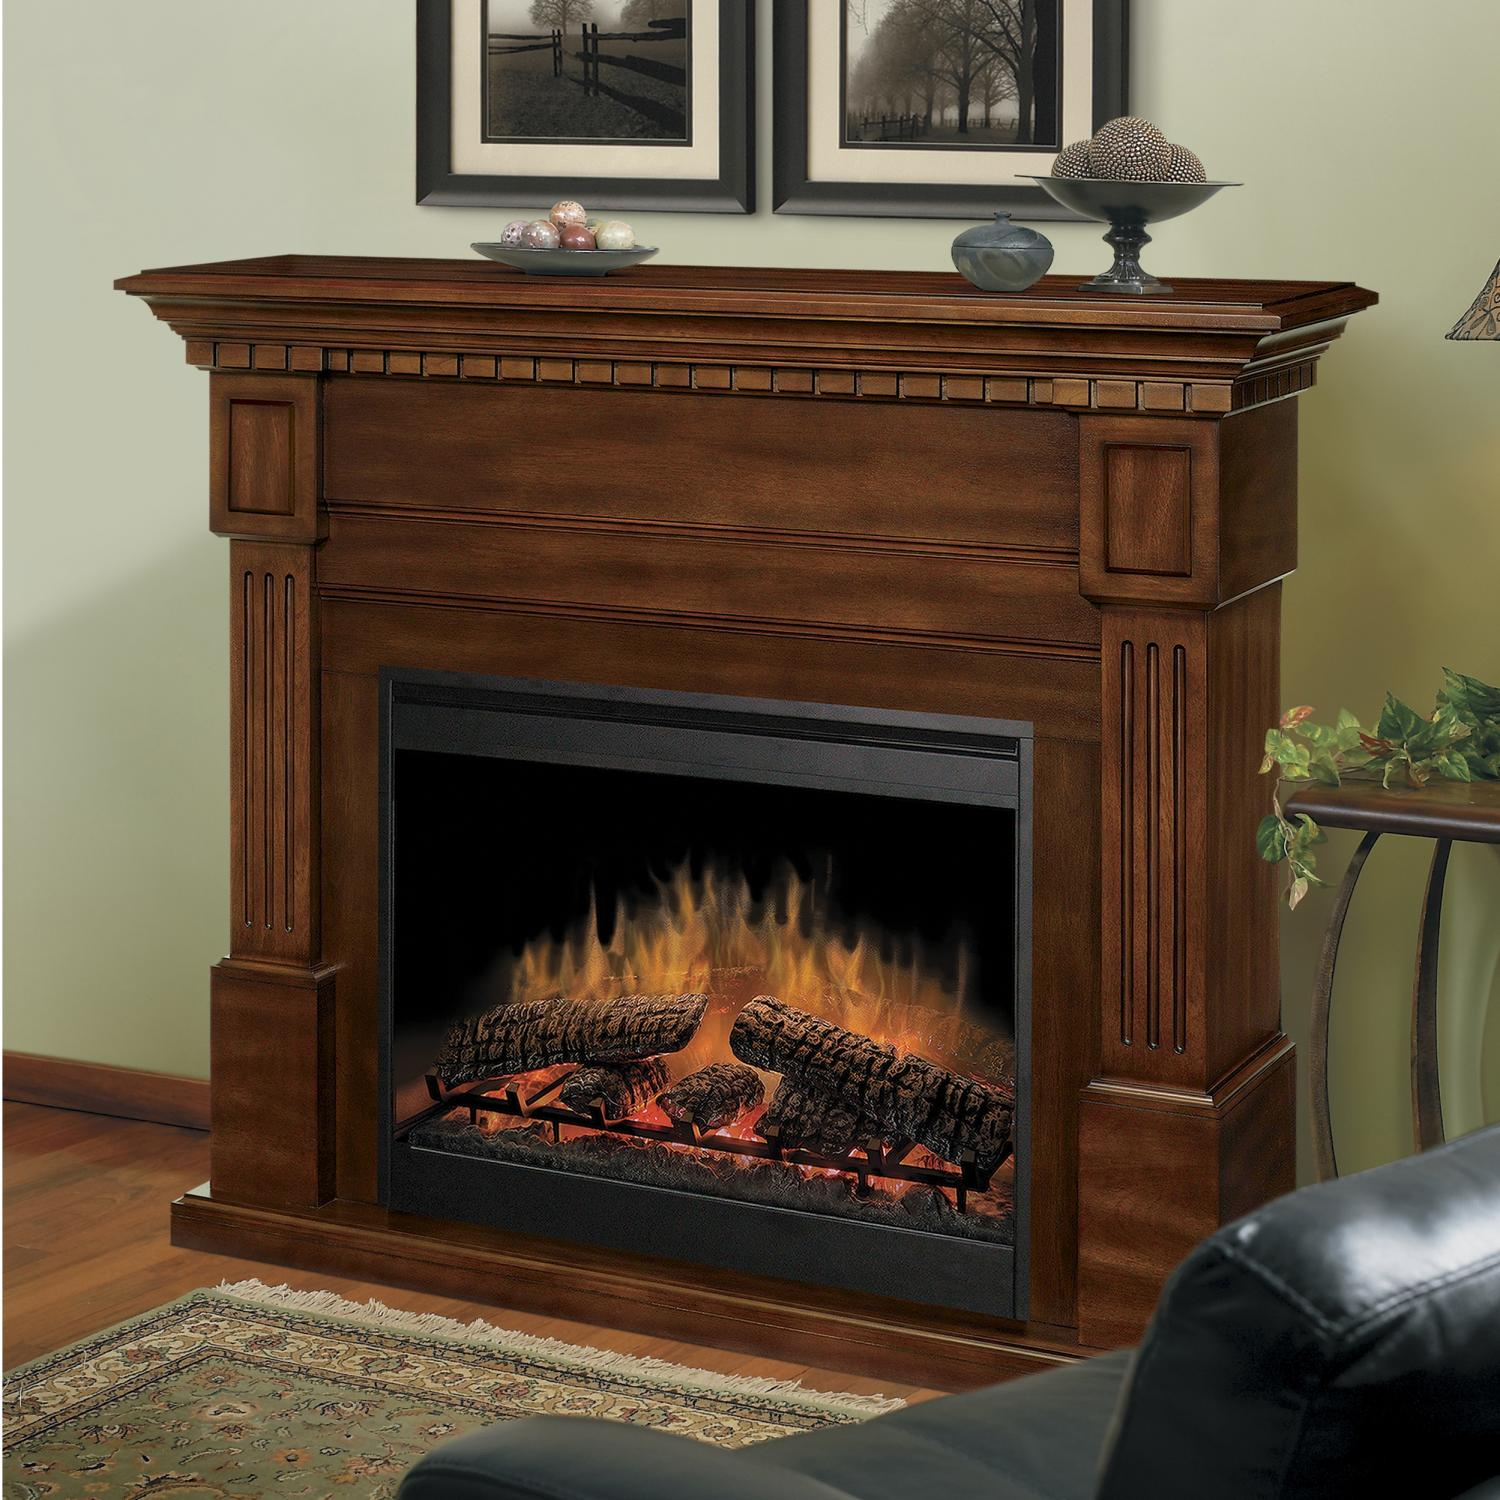 Firplace Mantels | Fireplace Mantel Kits Home Depot | Lowes Fireplace Mantel